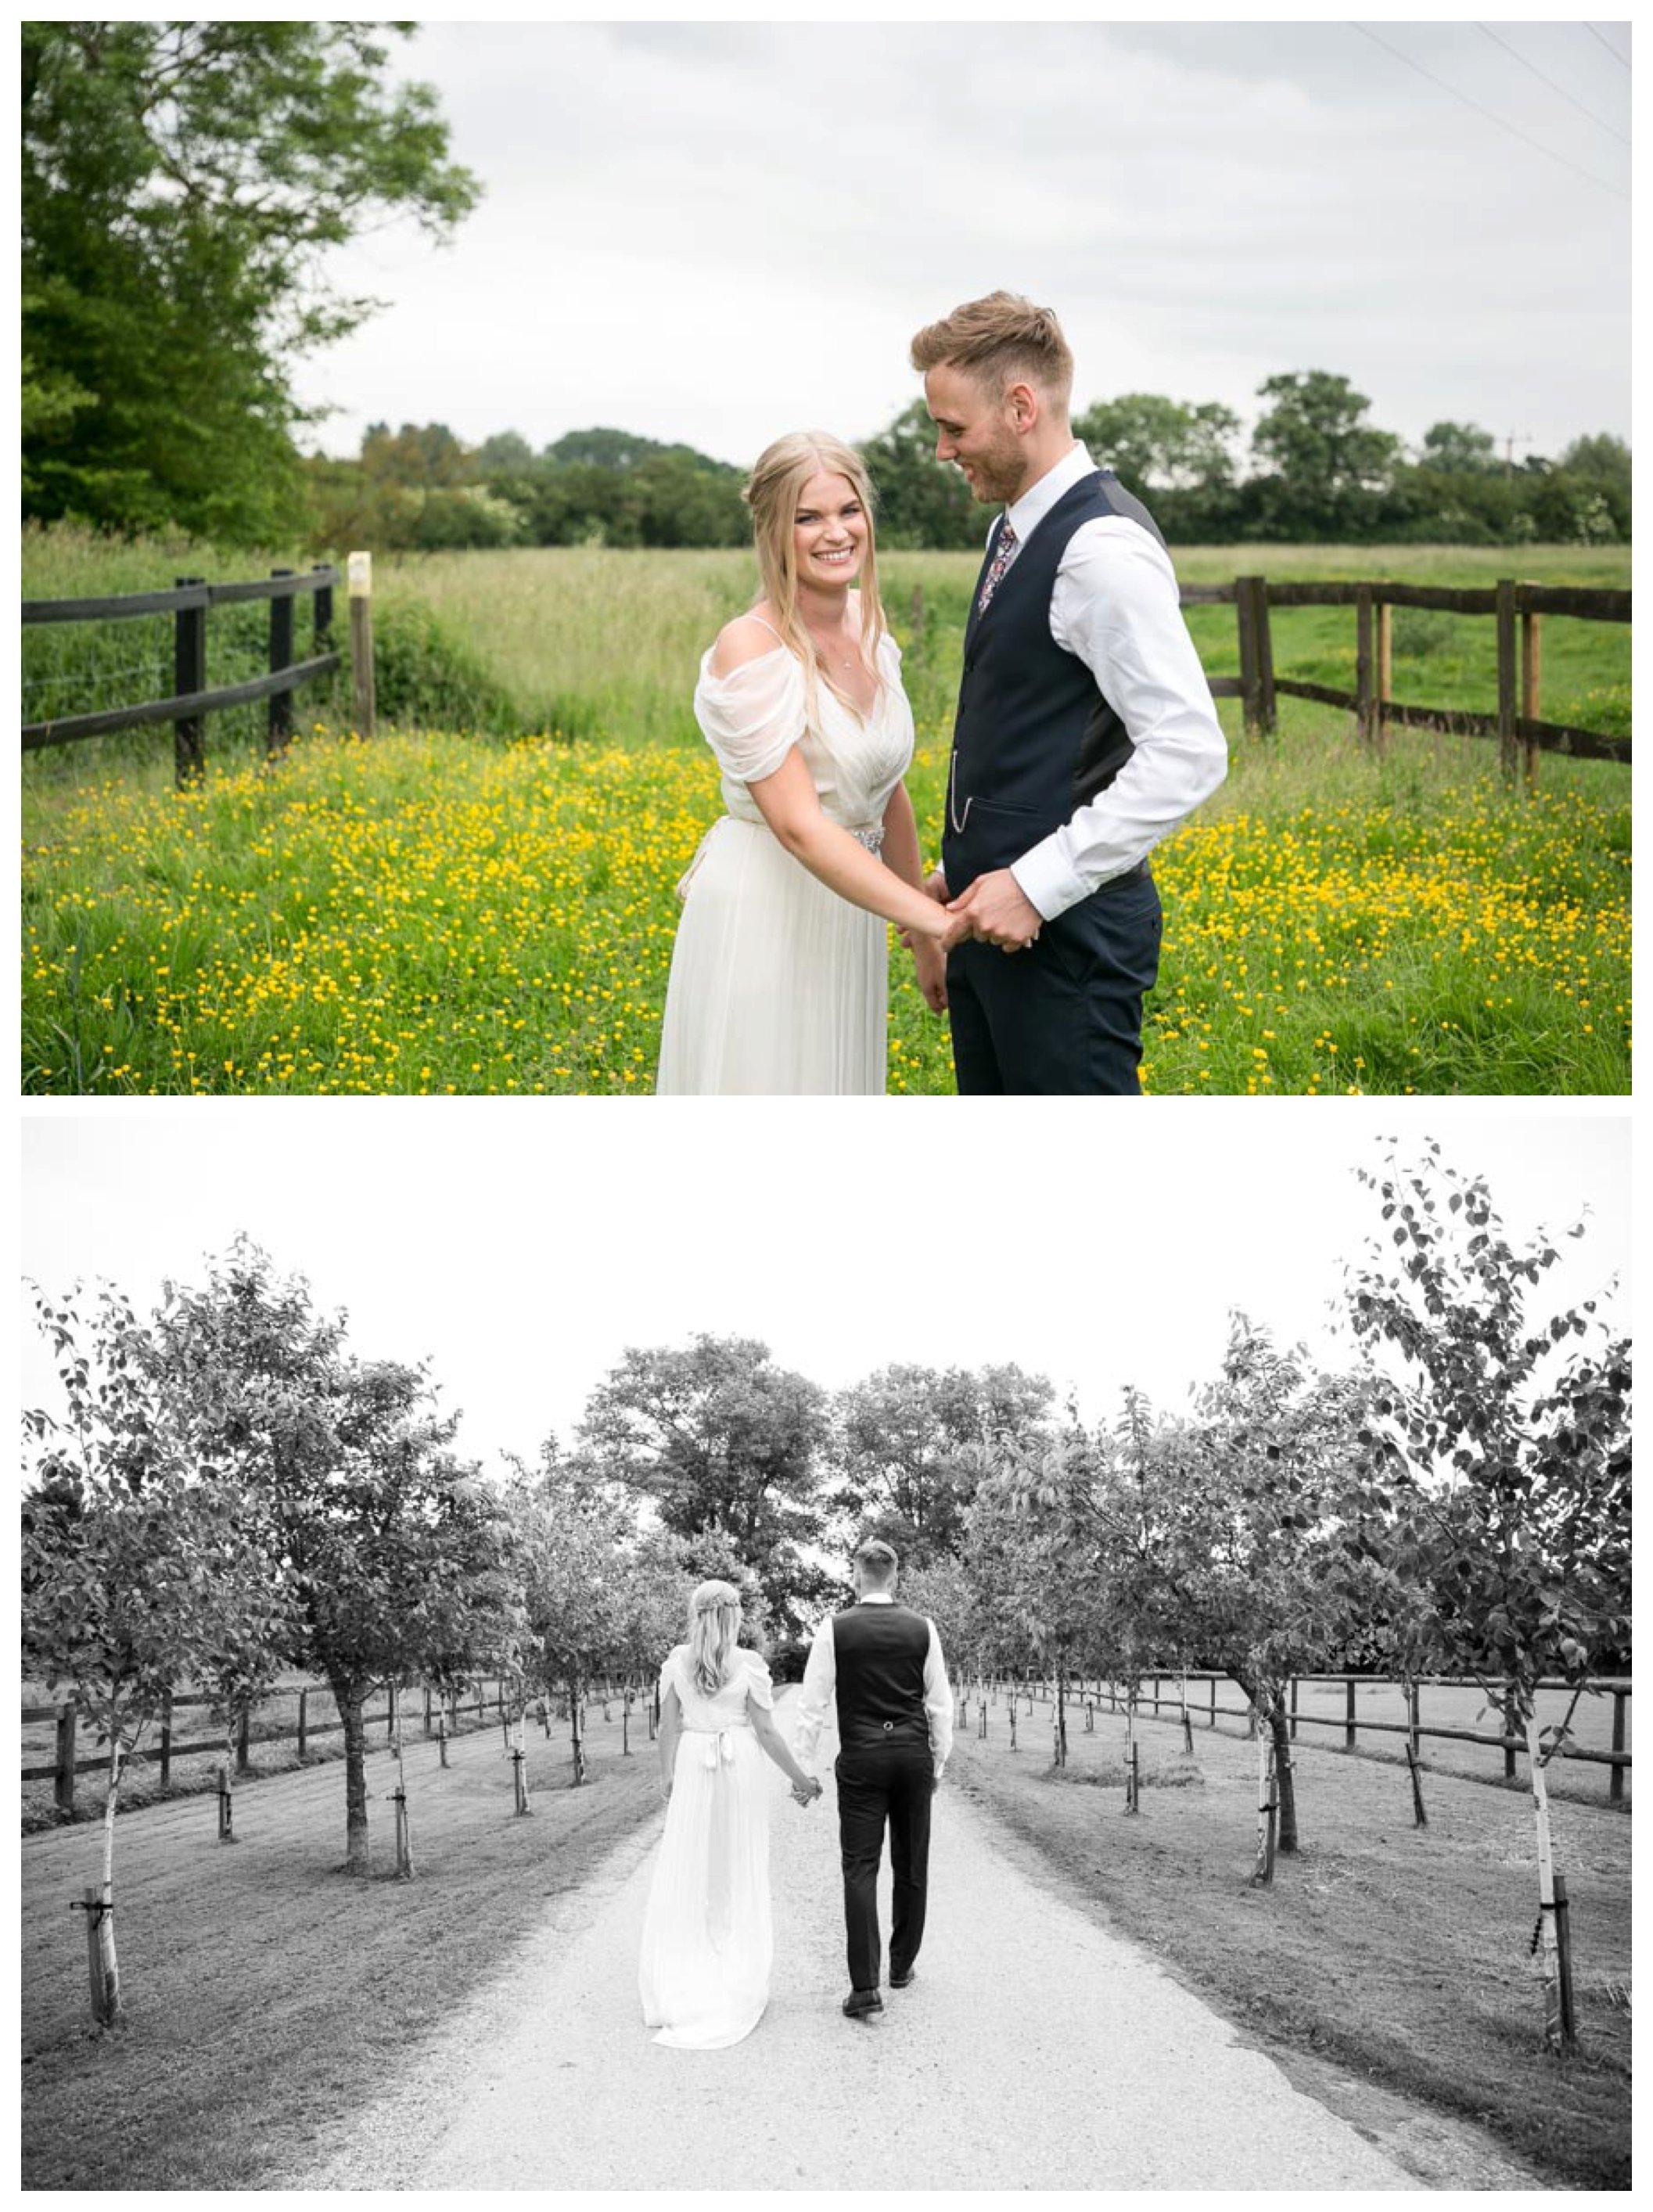 bride and groom stand smiling by yellow flowers in a field, bride and groom wald along tree lined path away from us